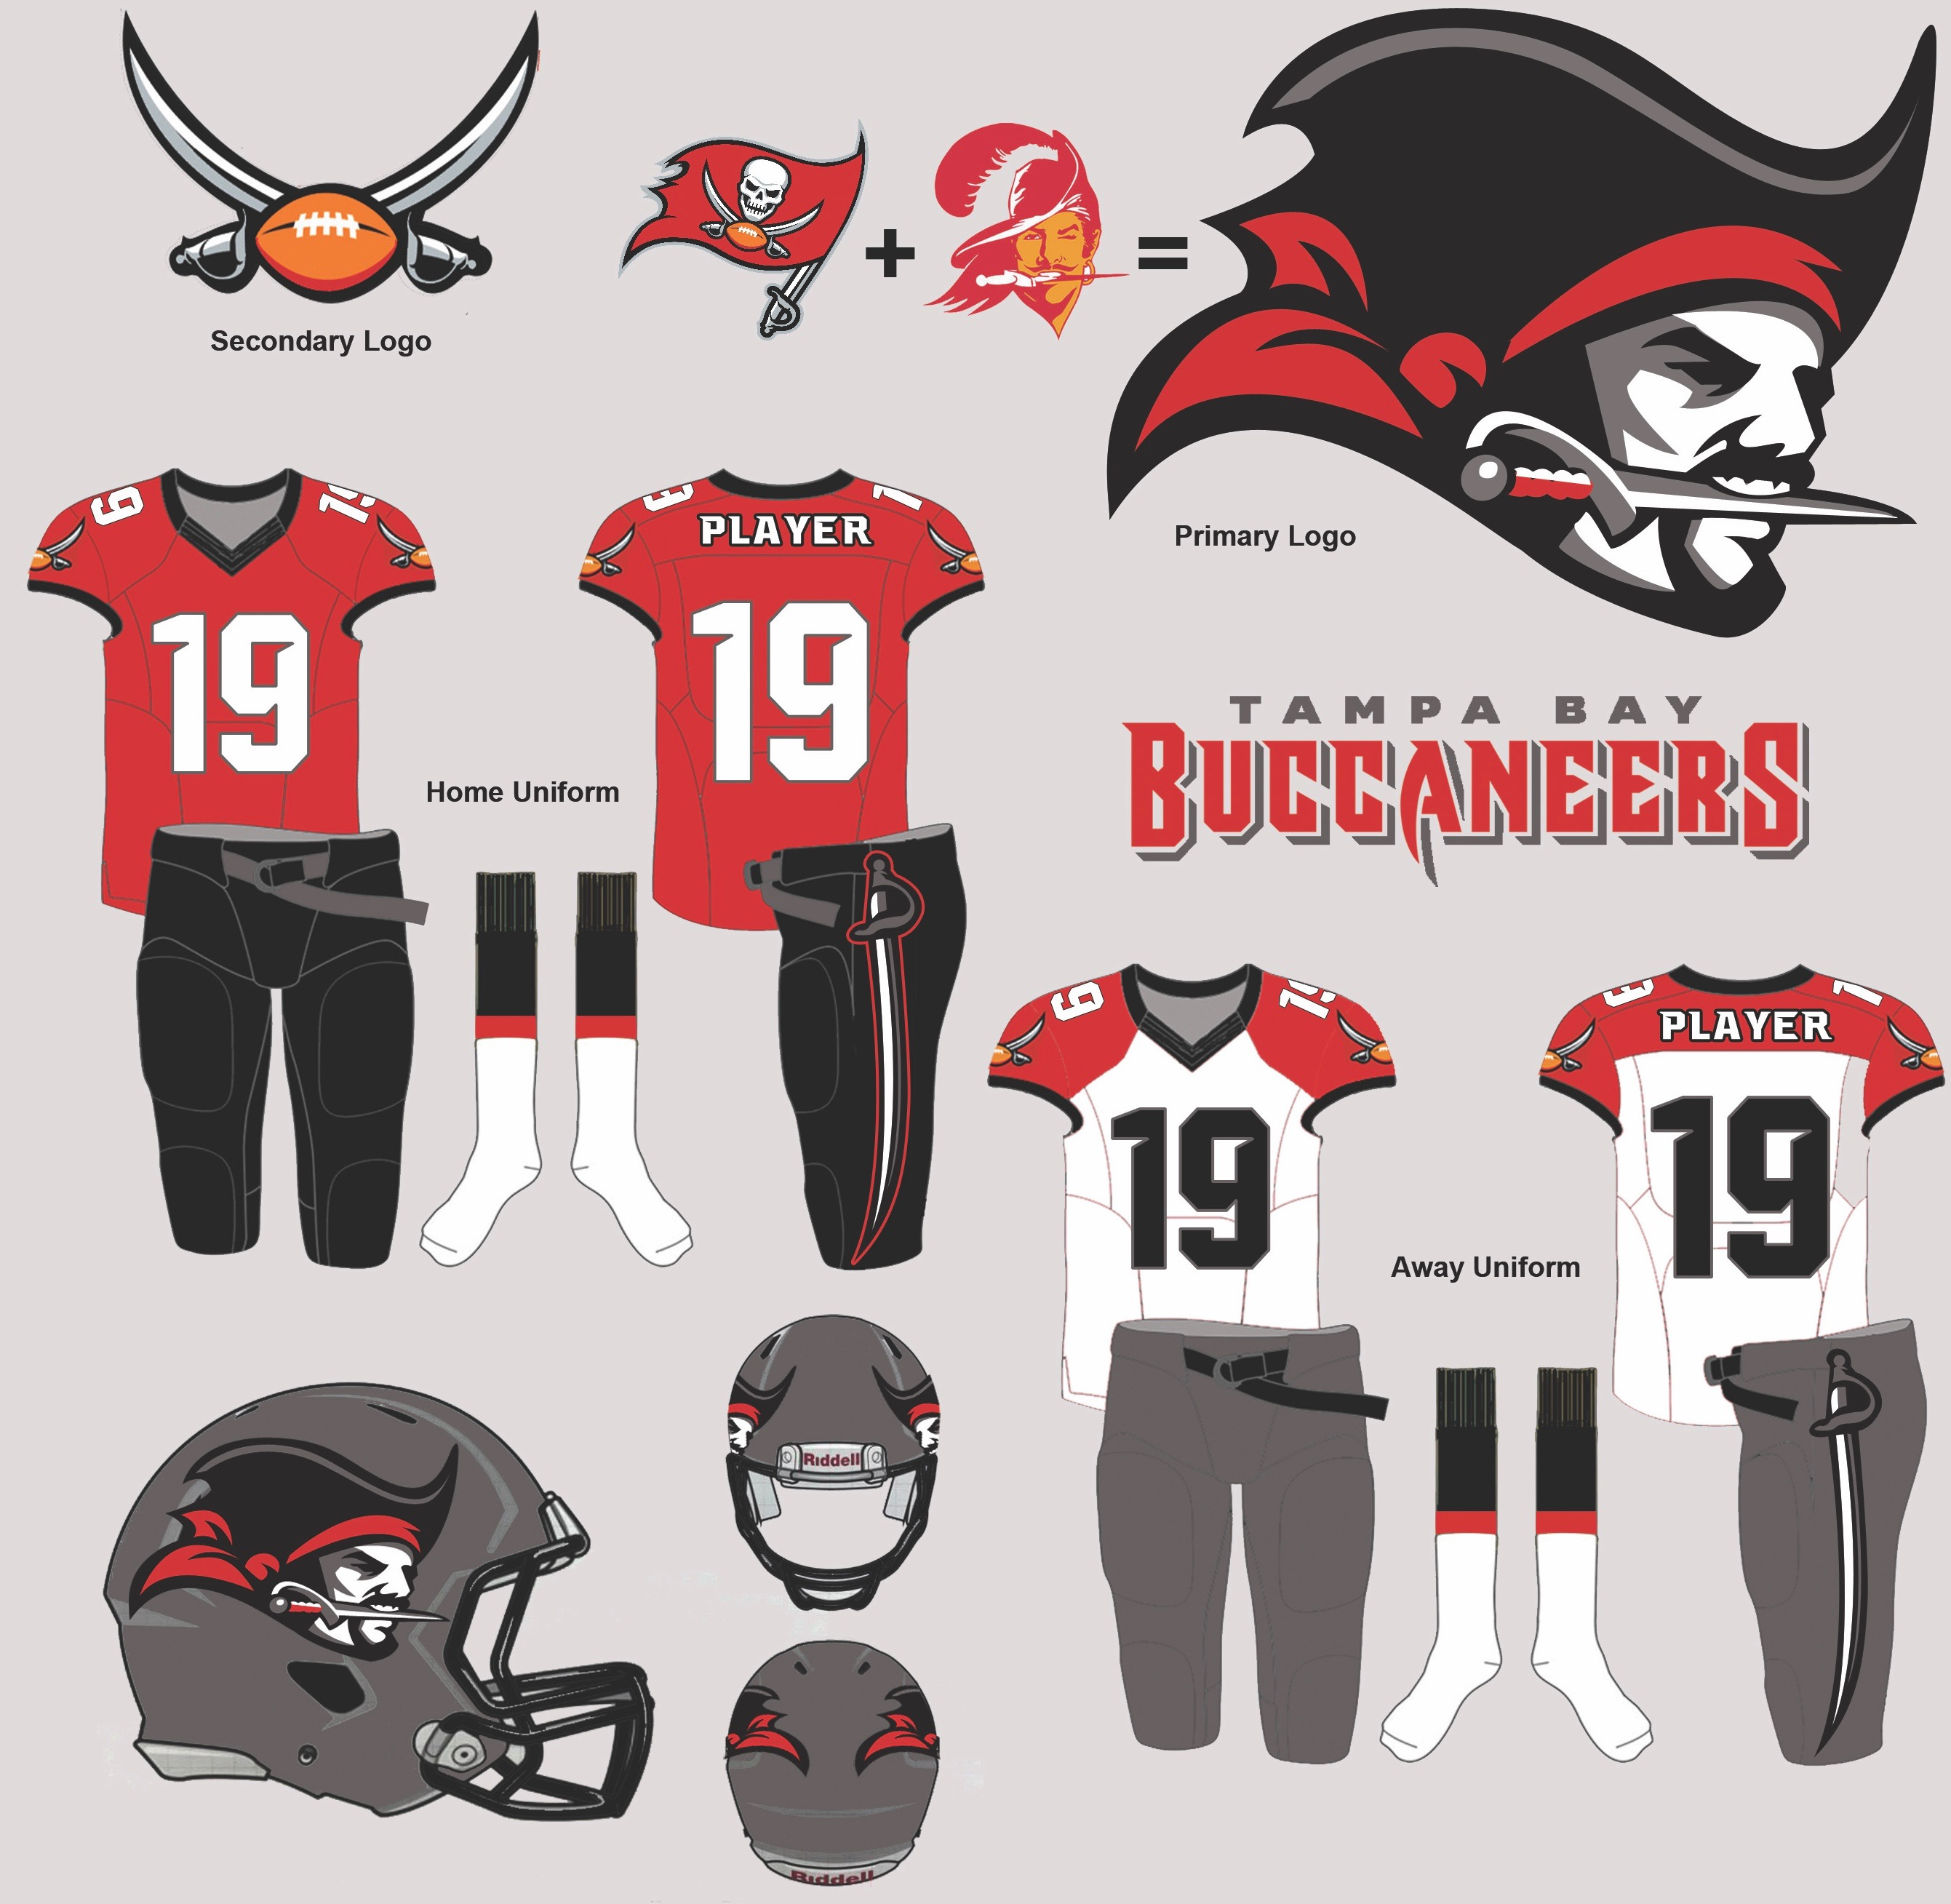 uniwatch tampa bay buccaneers redesign contest morgan